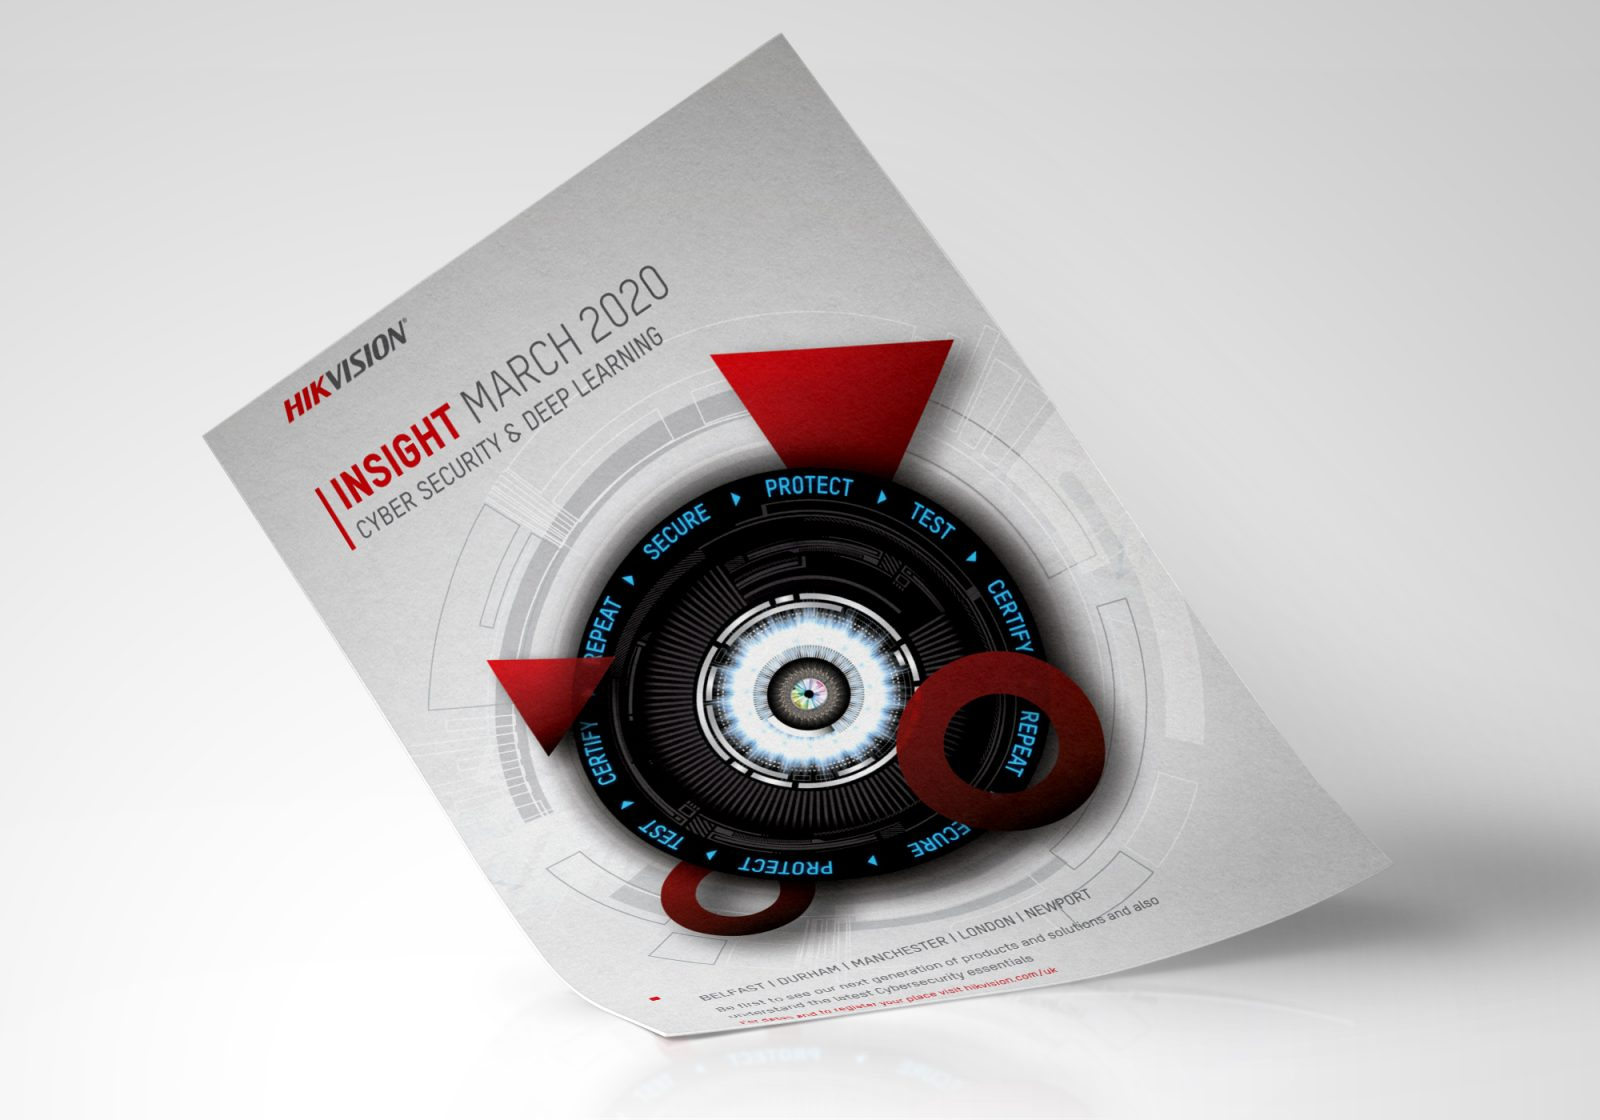 Hikvision Insight Roadshow A4 Advert